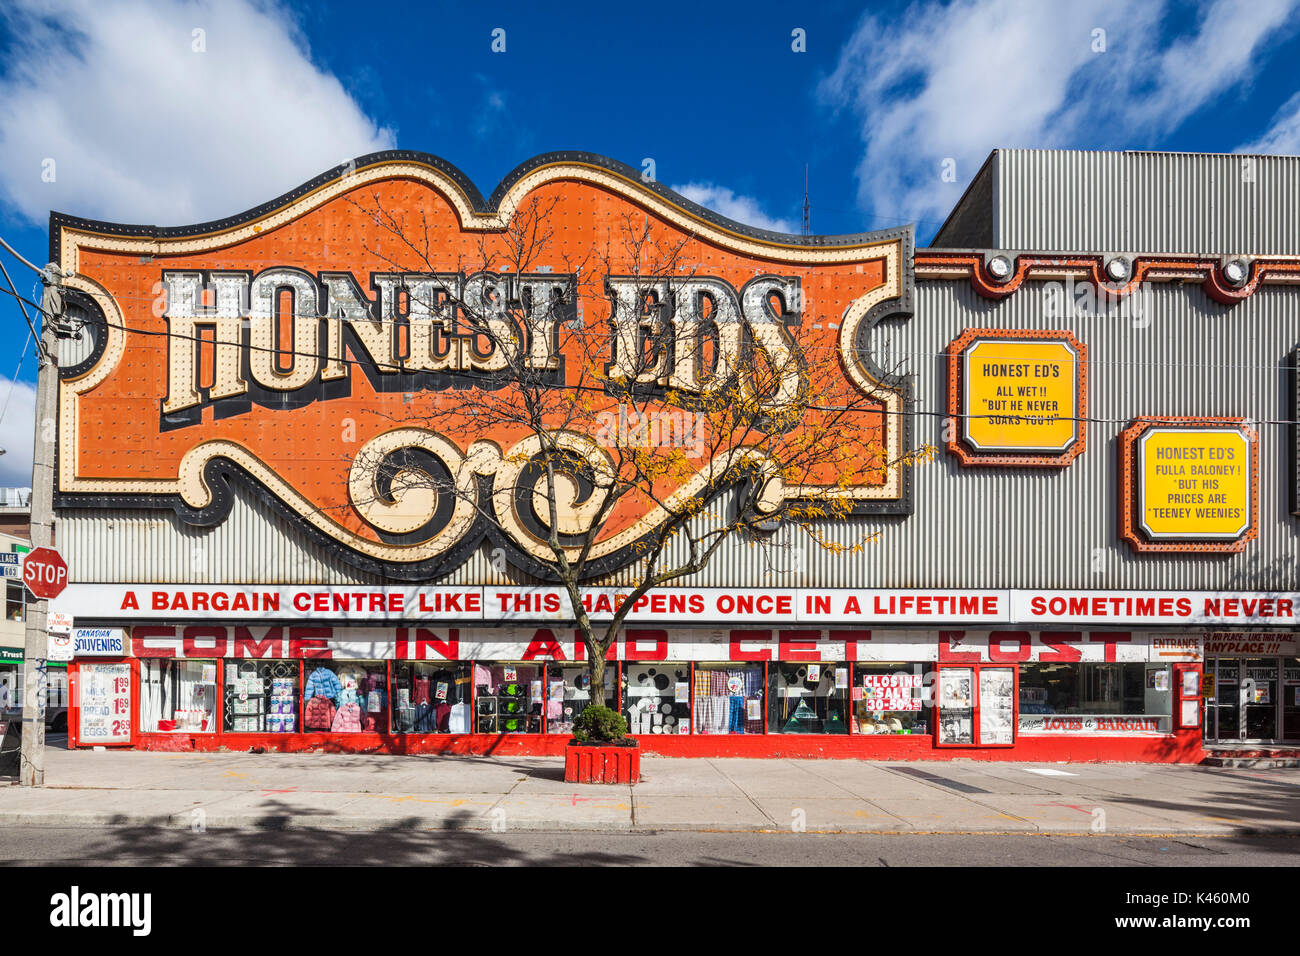 Canada, Ontario, Toronto, Honest Eds, famous store on Bloor Street West - Stock Image